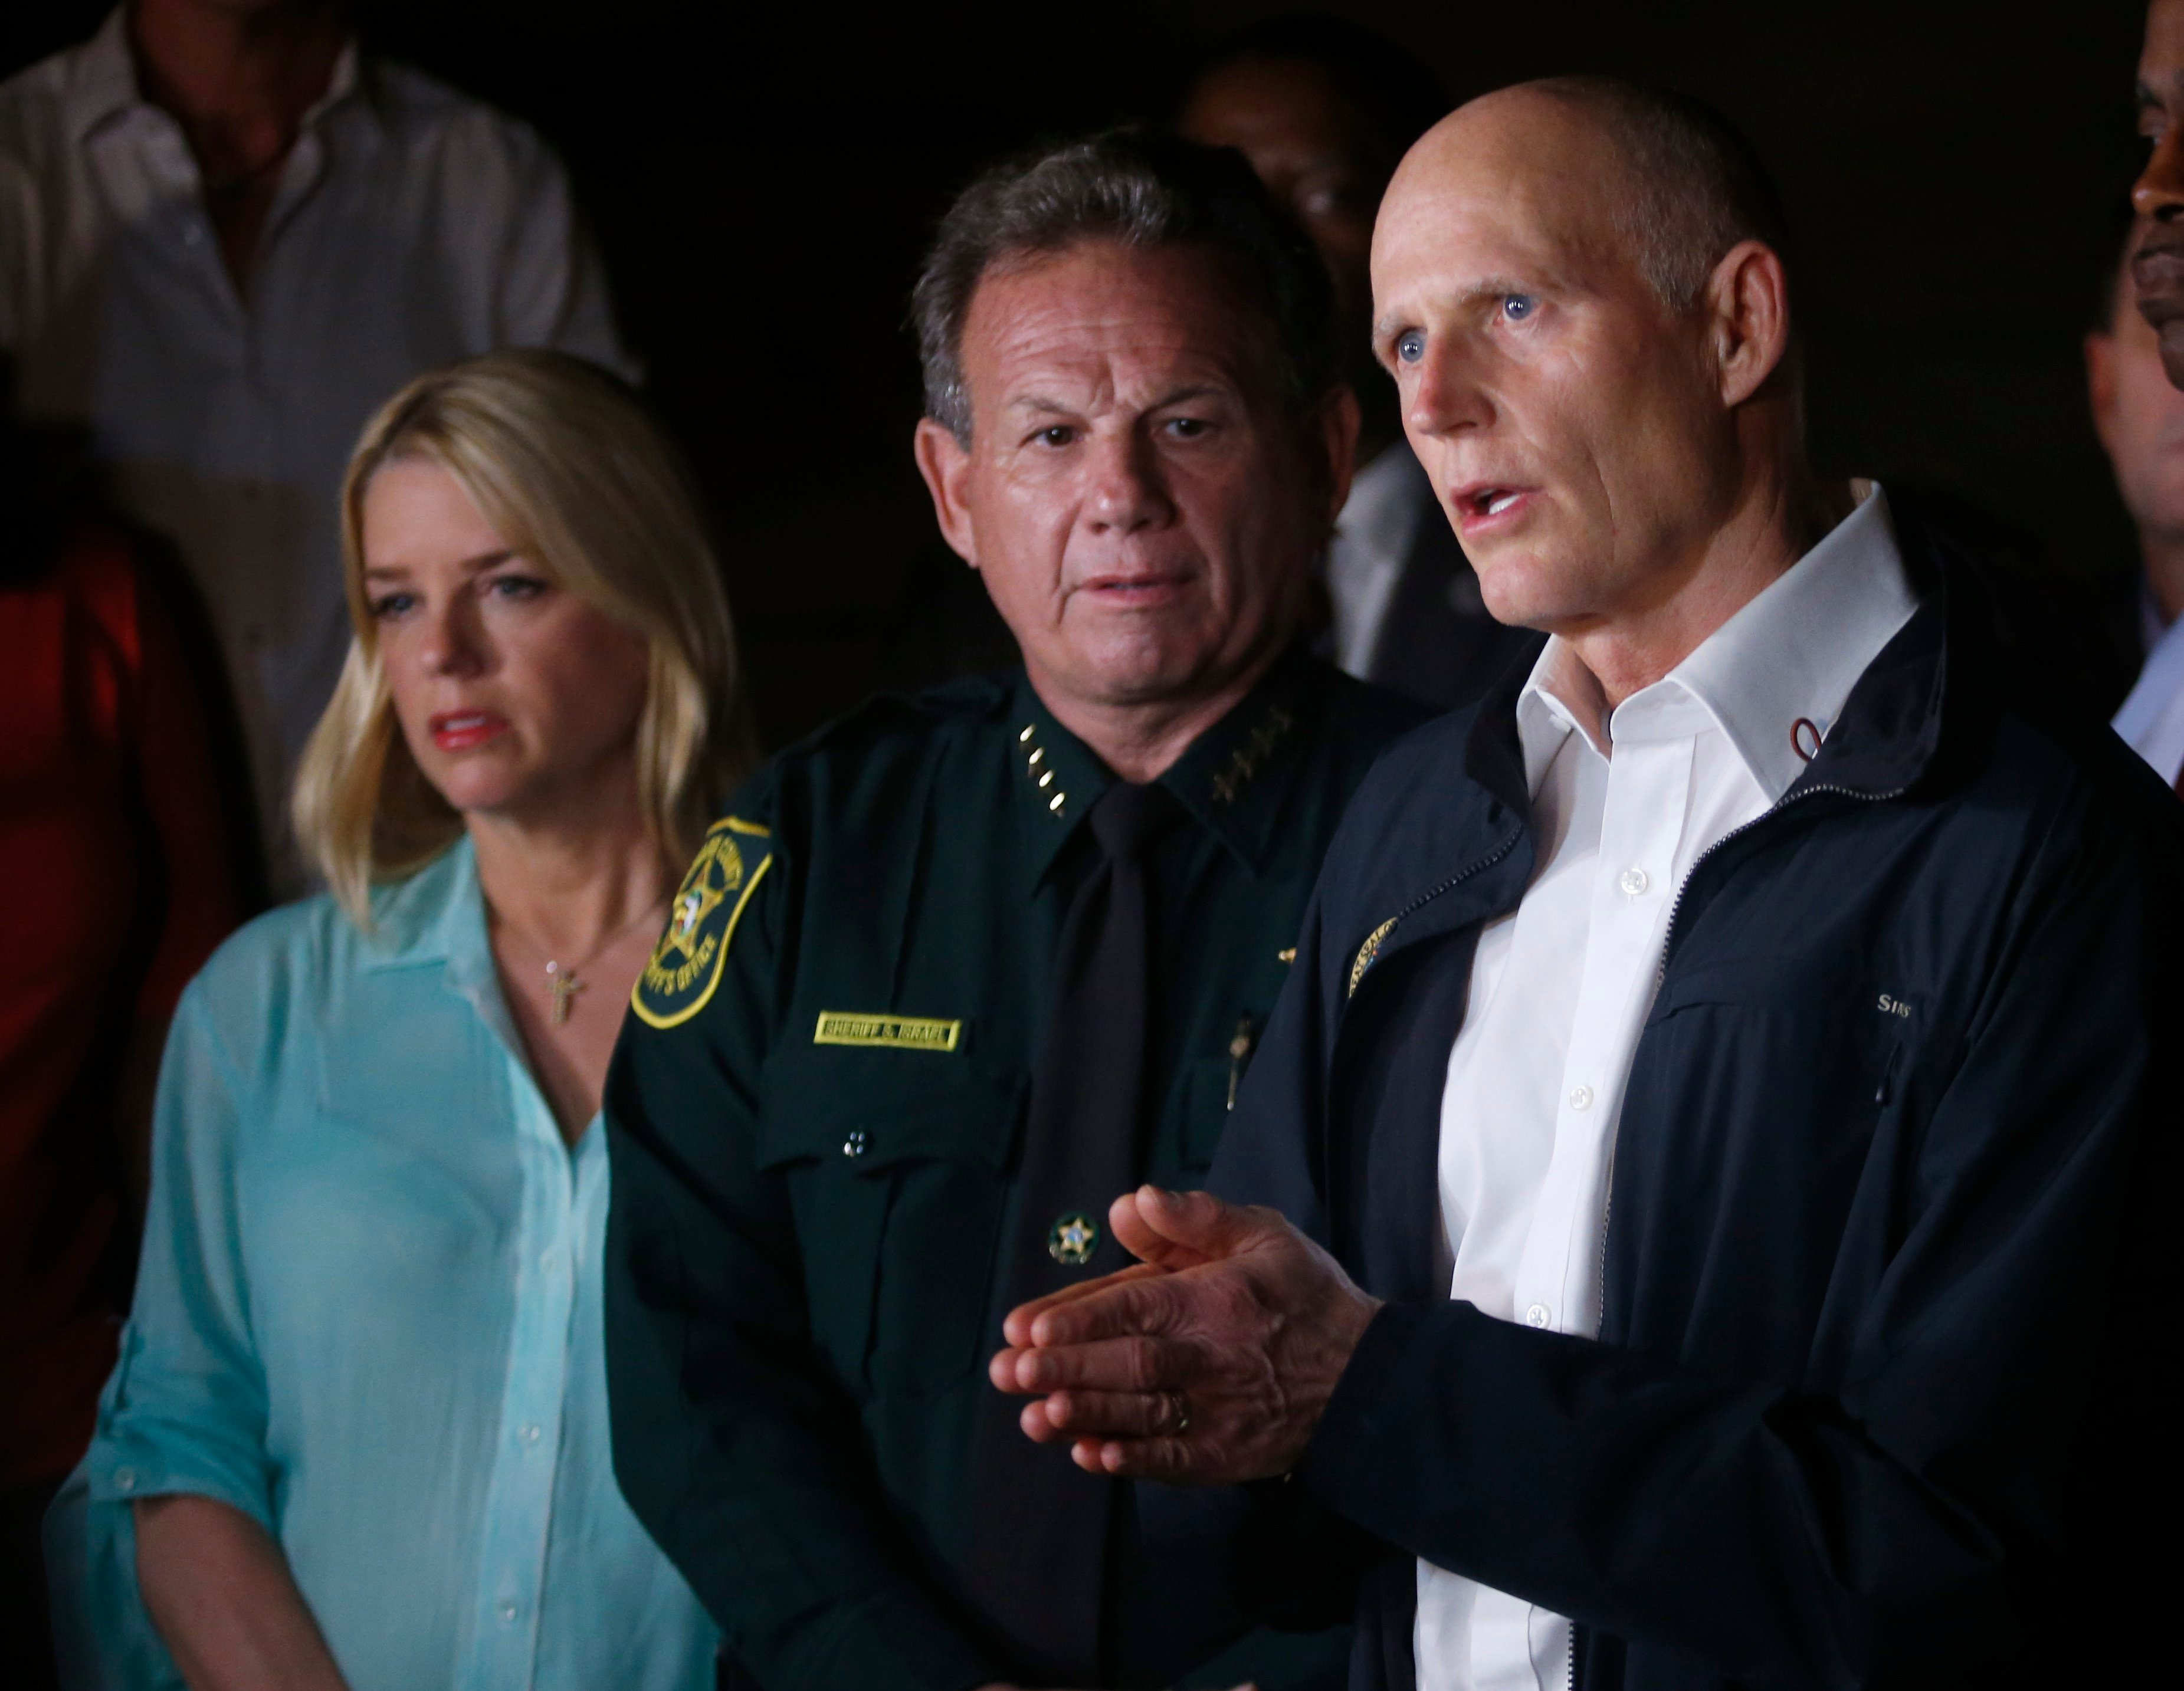 Florida Gov. Rick Scott, foreground, speaks along with Sheriff Scott Israel, center, of Broward County, and Pam Bondi, Florida Attorney General, during a news conference near Marjory Stoneman Douglas High School in Parkland, Fla. (AP Photo/Wilfredo Lee)